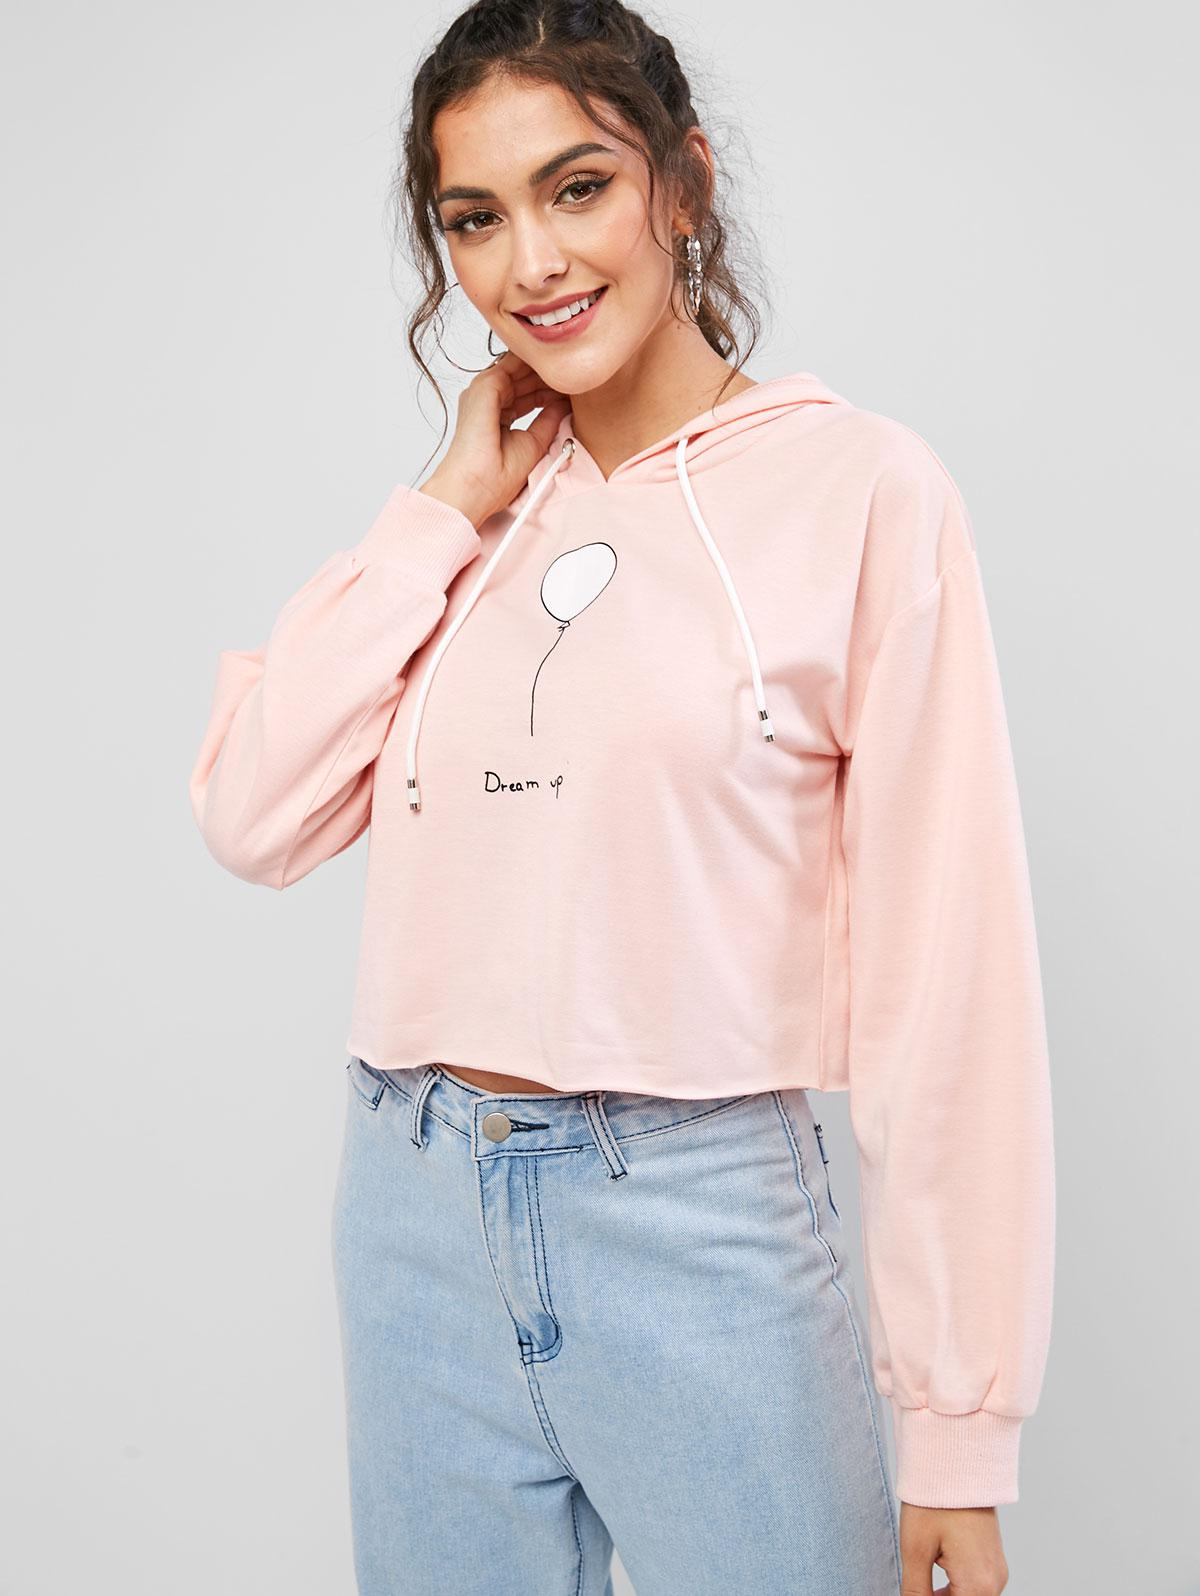 ZAFUL Balloon Dream Up Graphic Cropped Hoodie